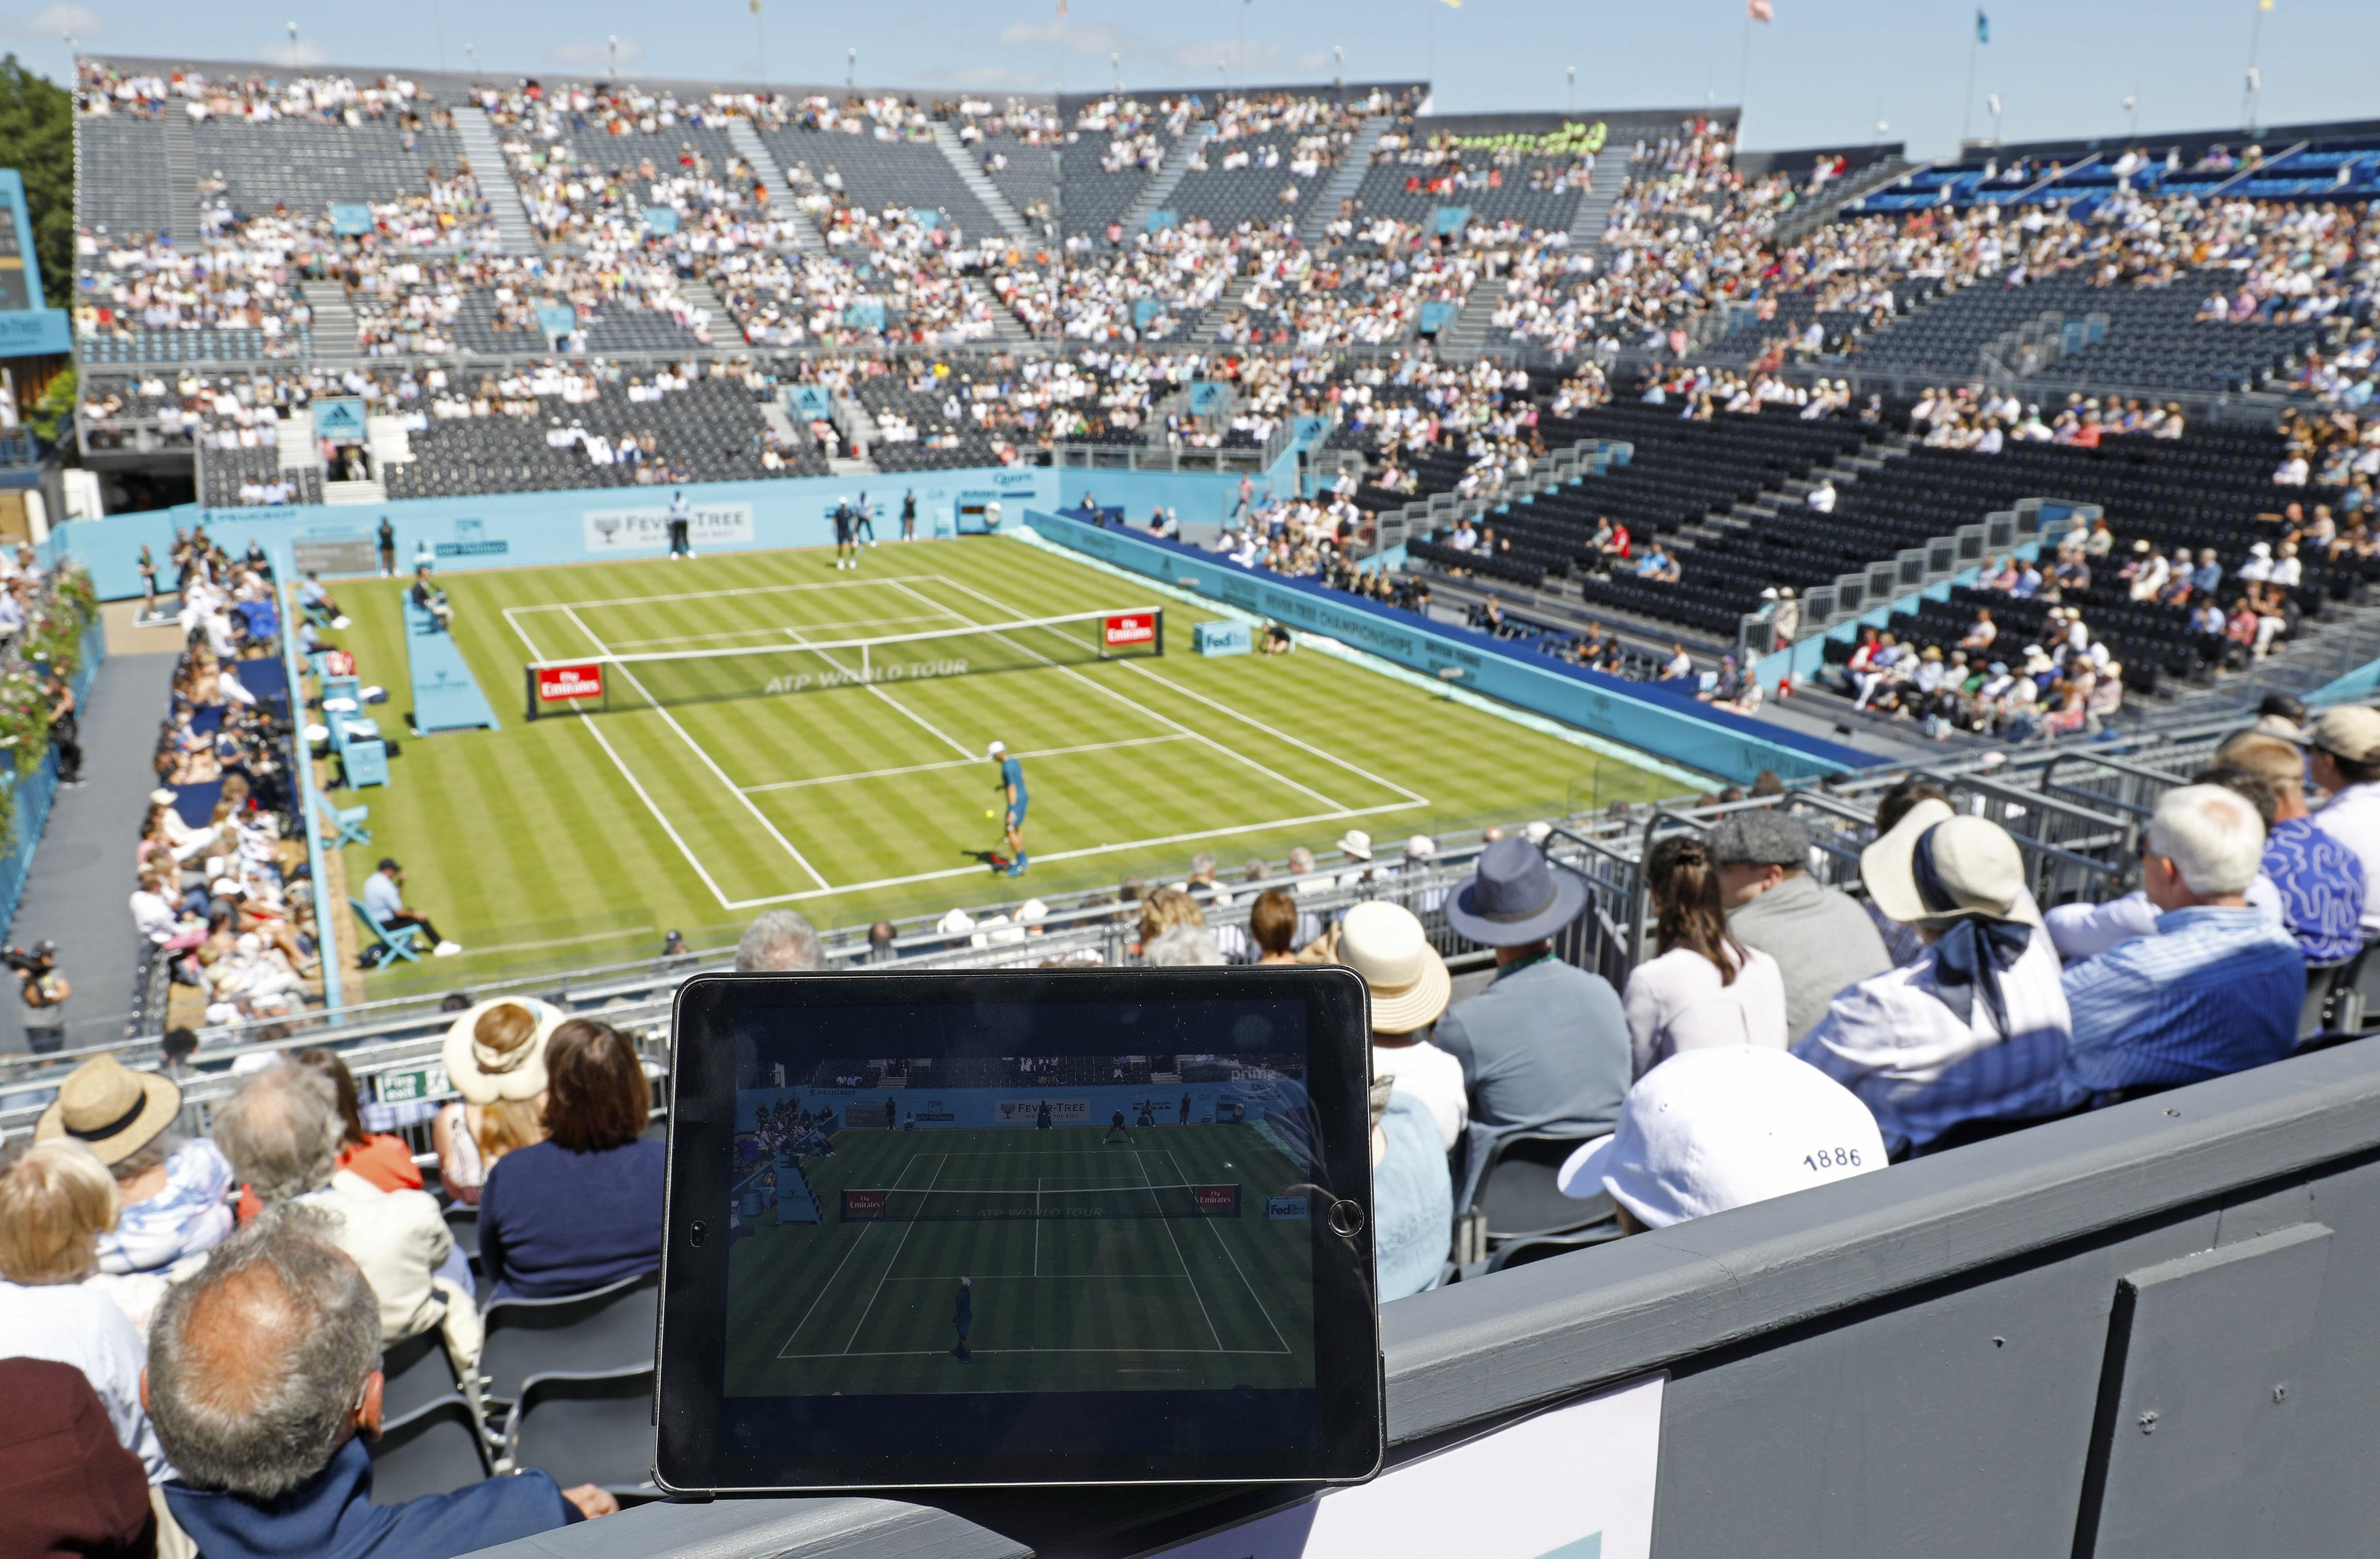 Amazon Prime showed tennis on its video service for the first time at the Queen's Club Championships